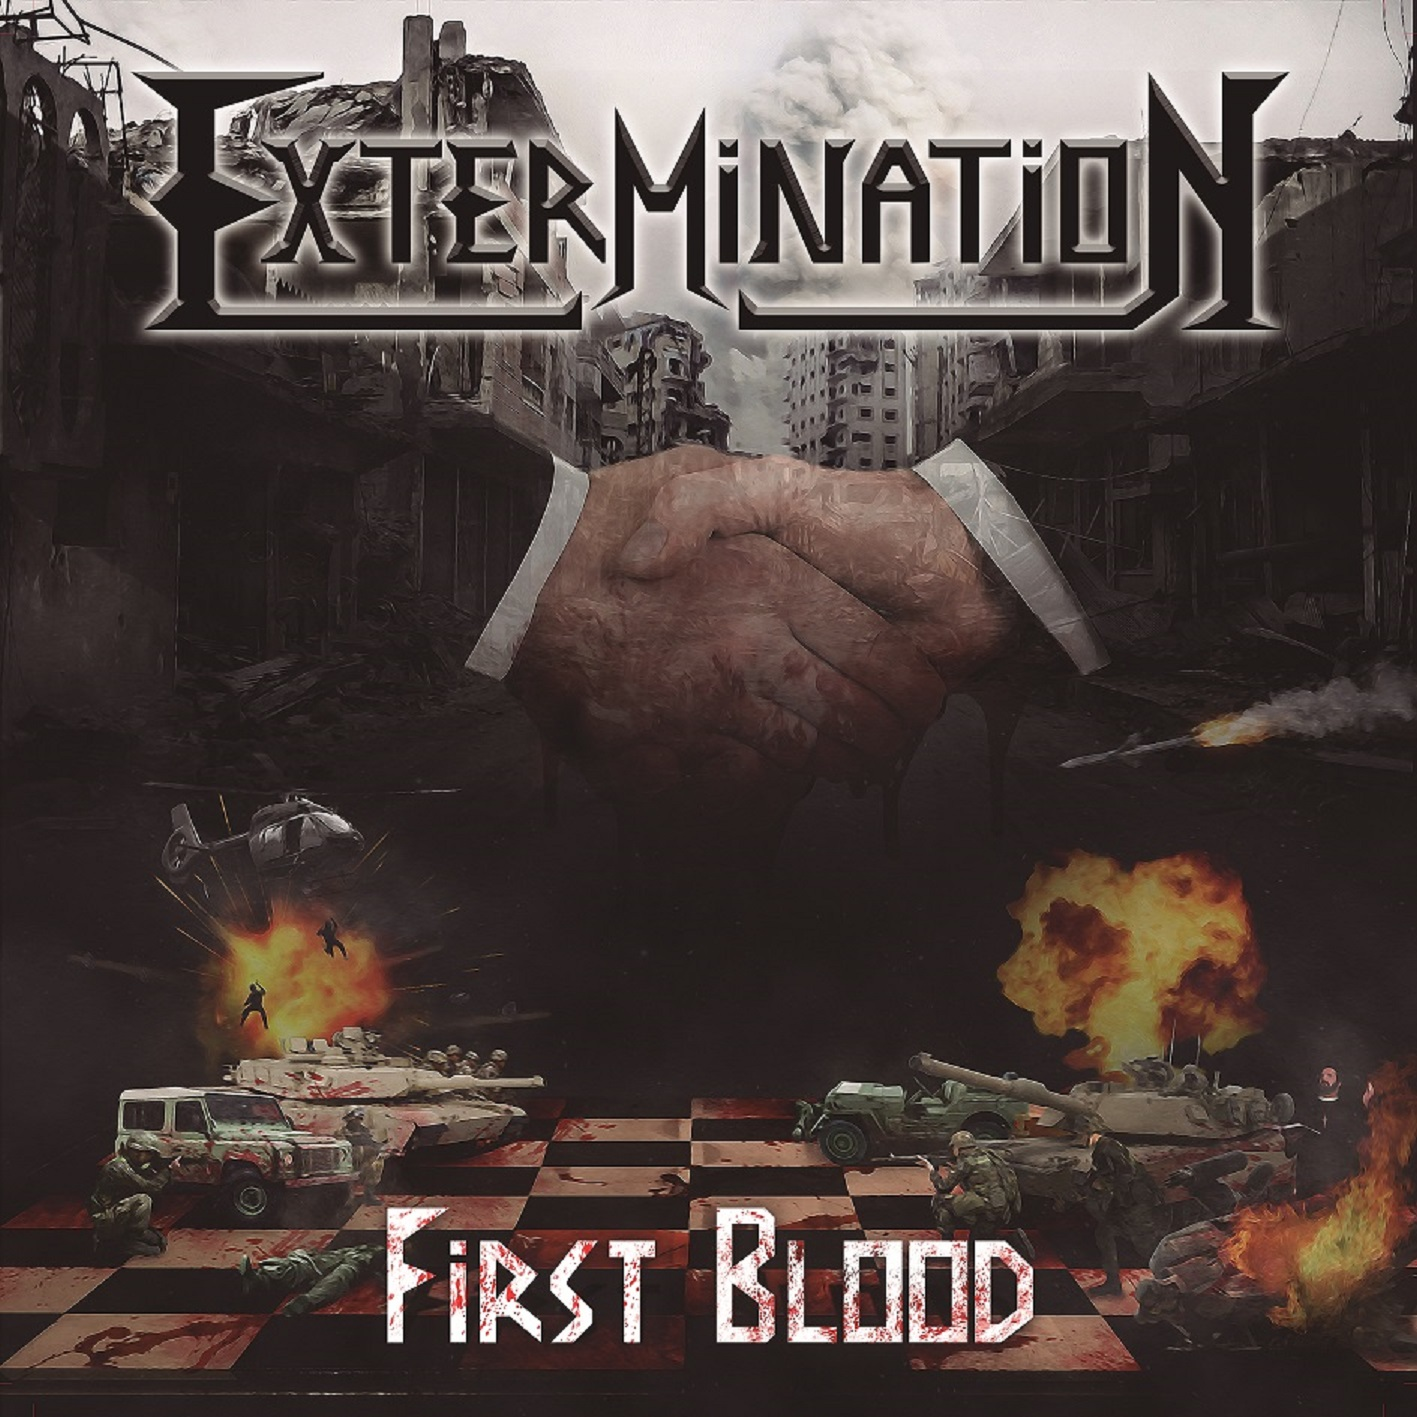 First Blood - EXTERMINATION